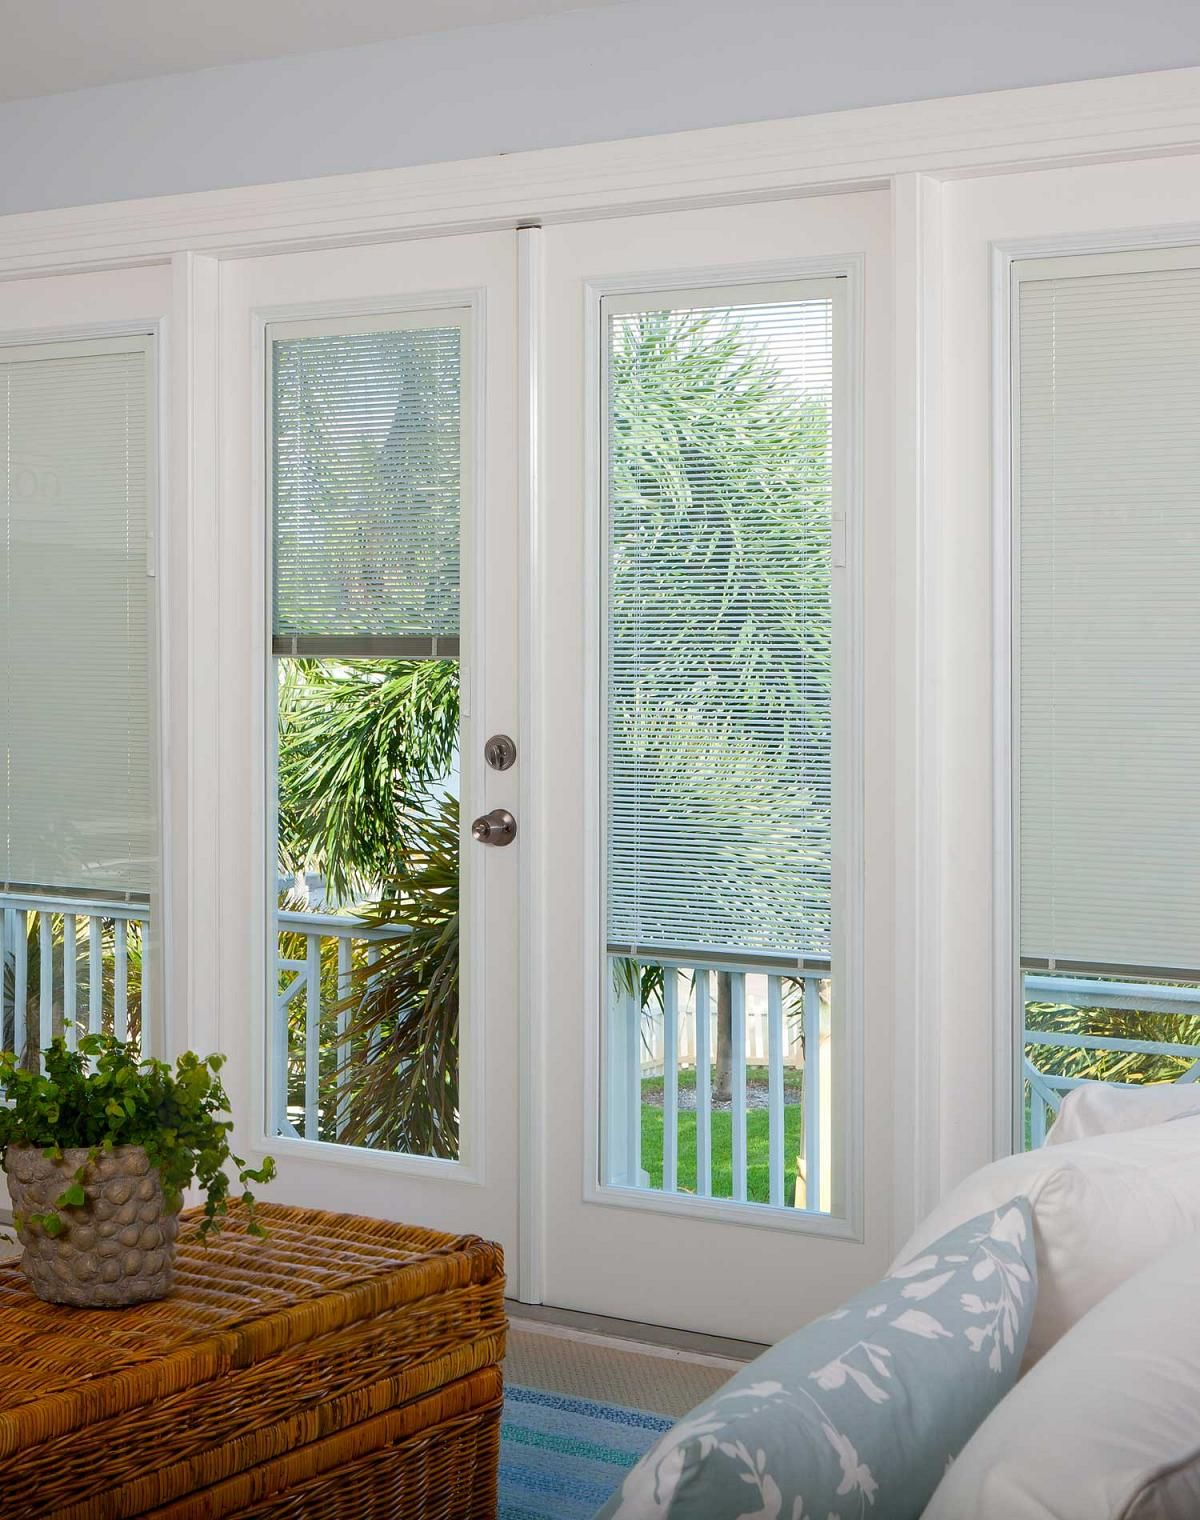 Light Touch 174 Enclosed Blinds Doors Windows Blinds